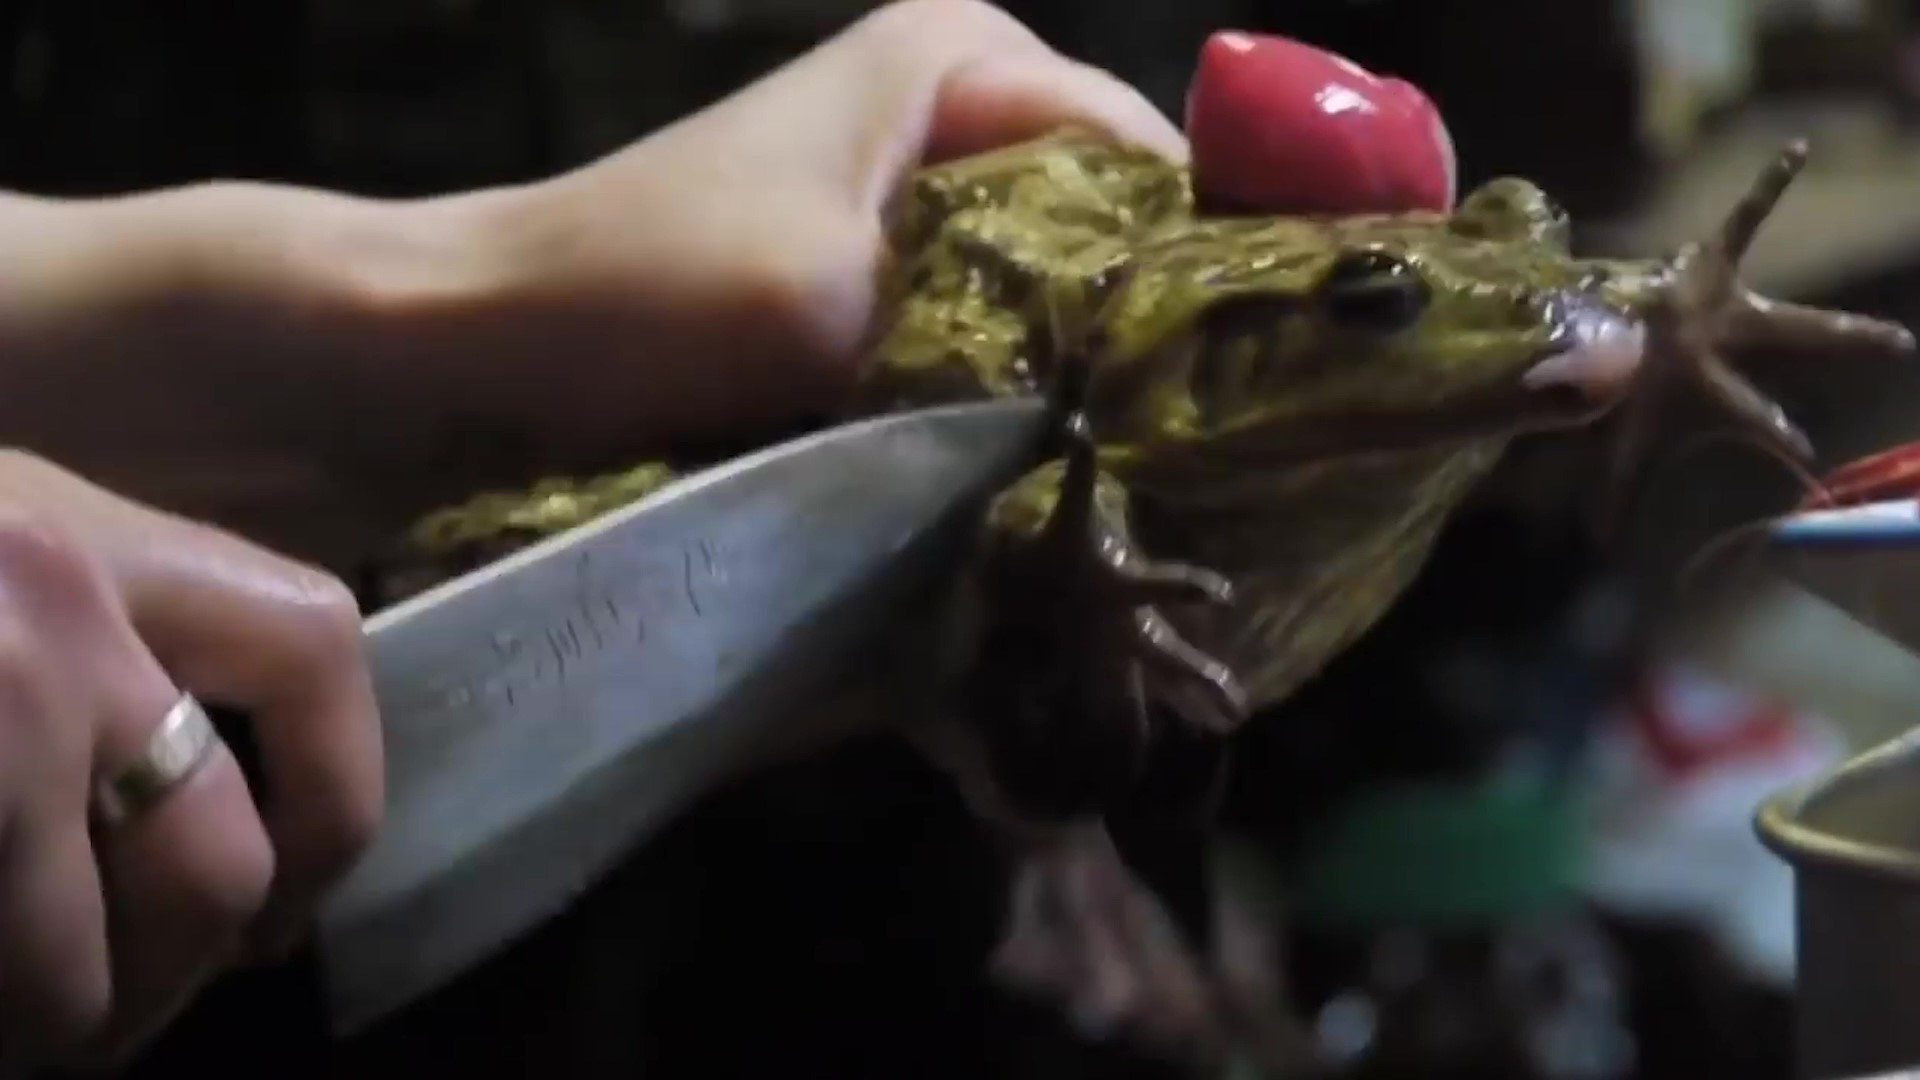 EATEN TO EXTINCTION! Millions of frogs are being tortured, maimed and killed - for the dinner table!